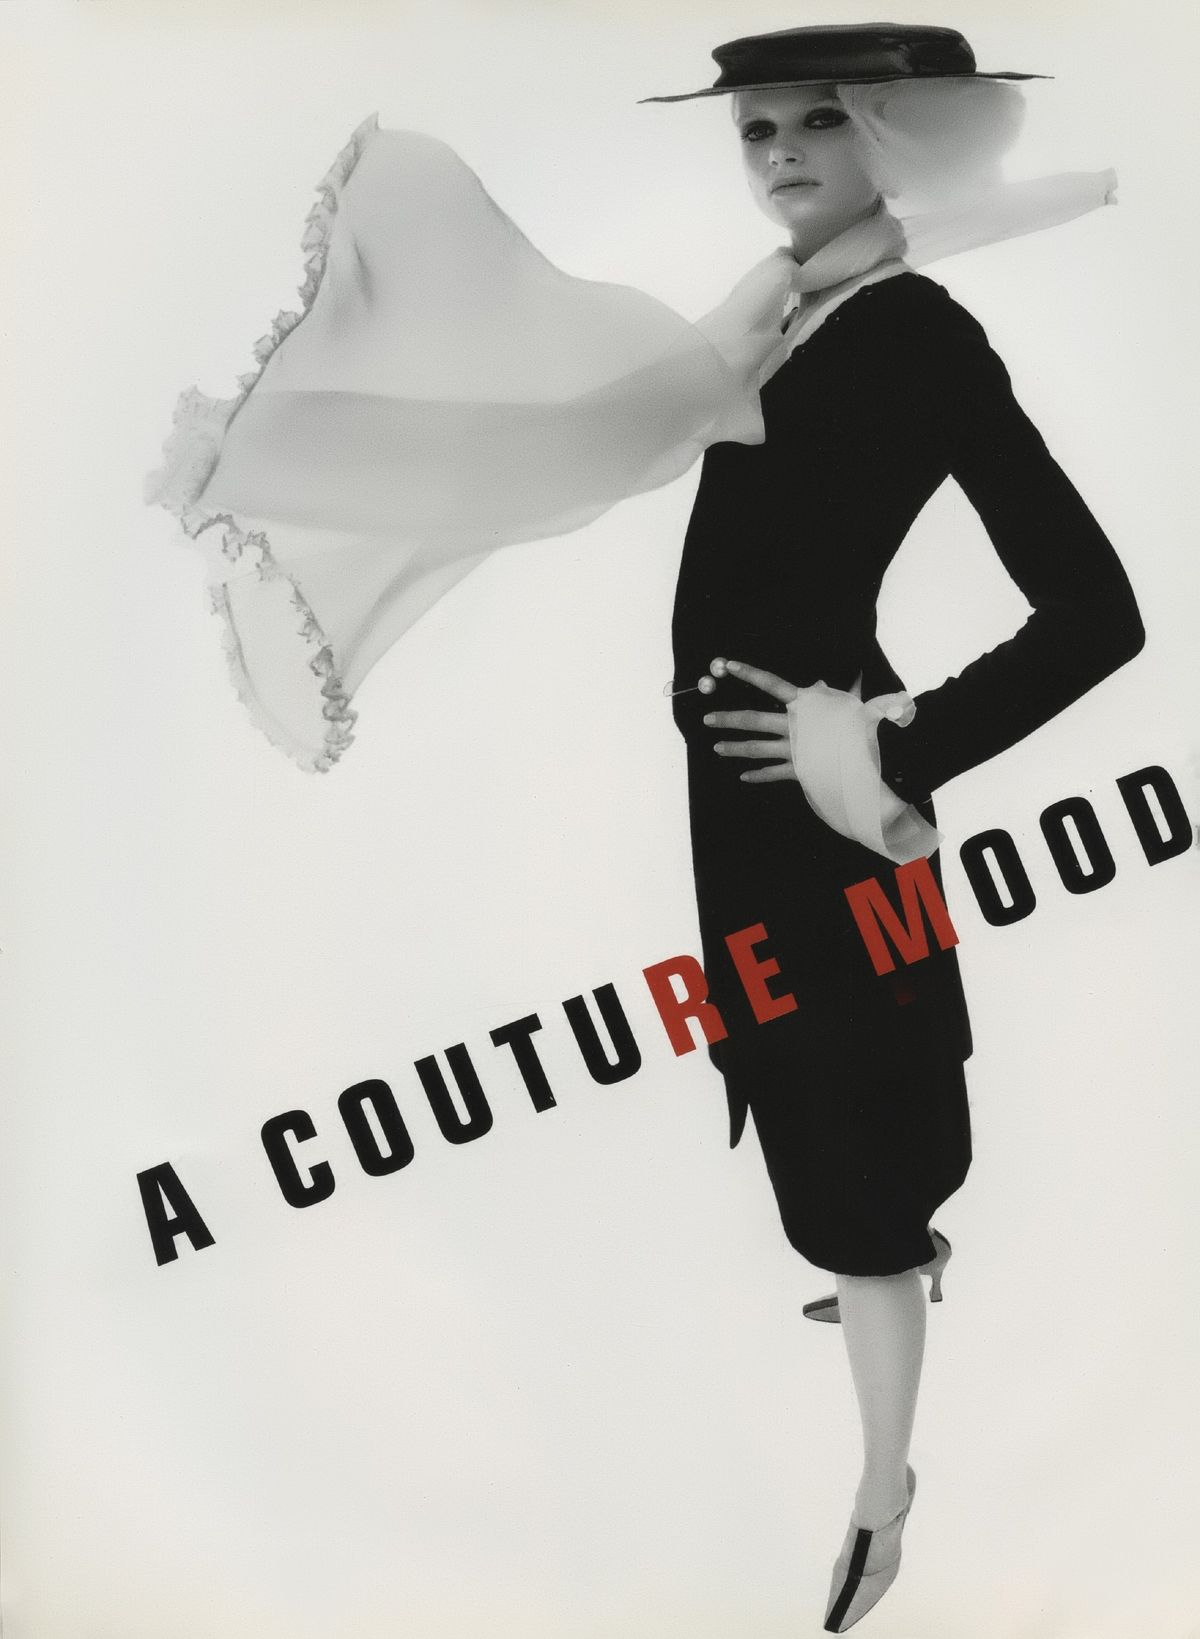 Vogue Italia March 2000 Haute Couture Supplement A Couture Mood by Miles…